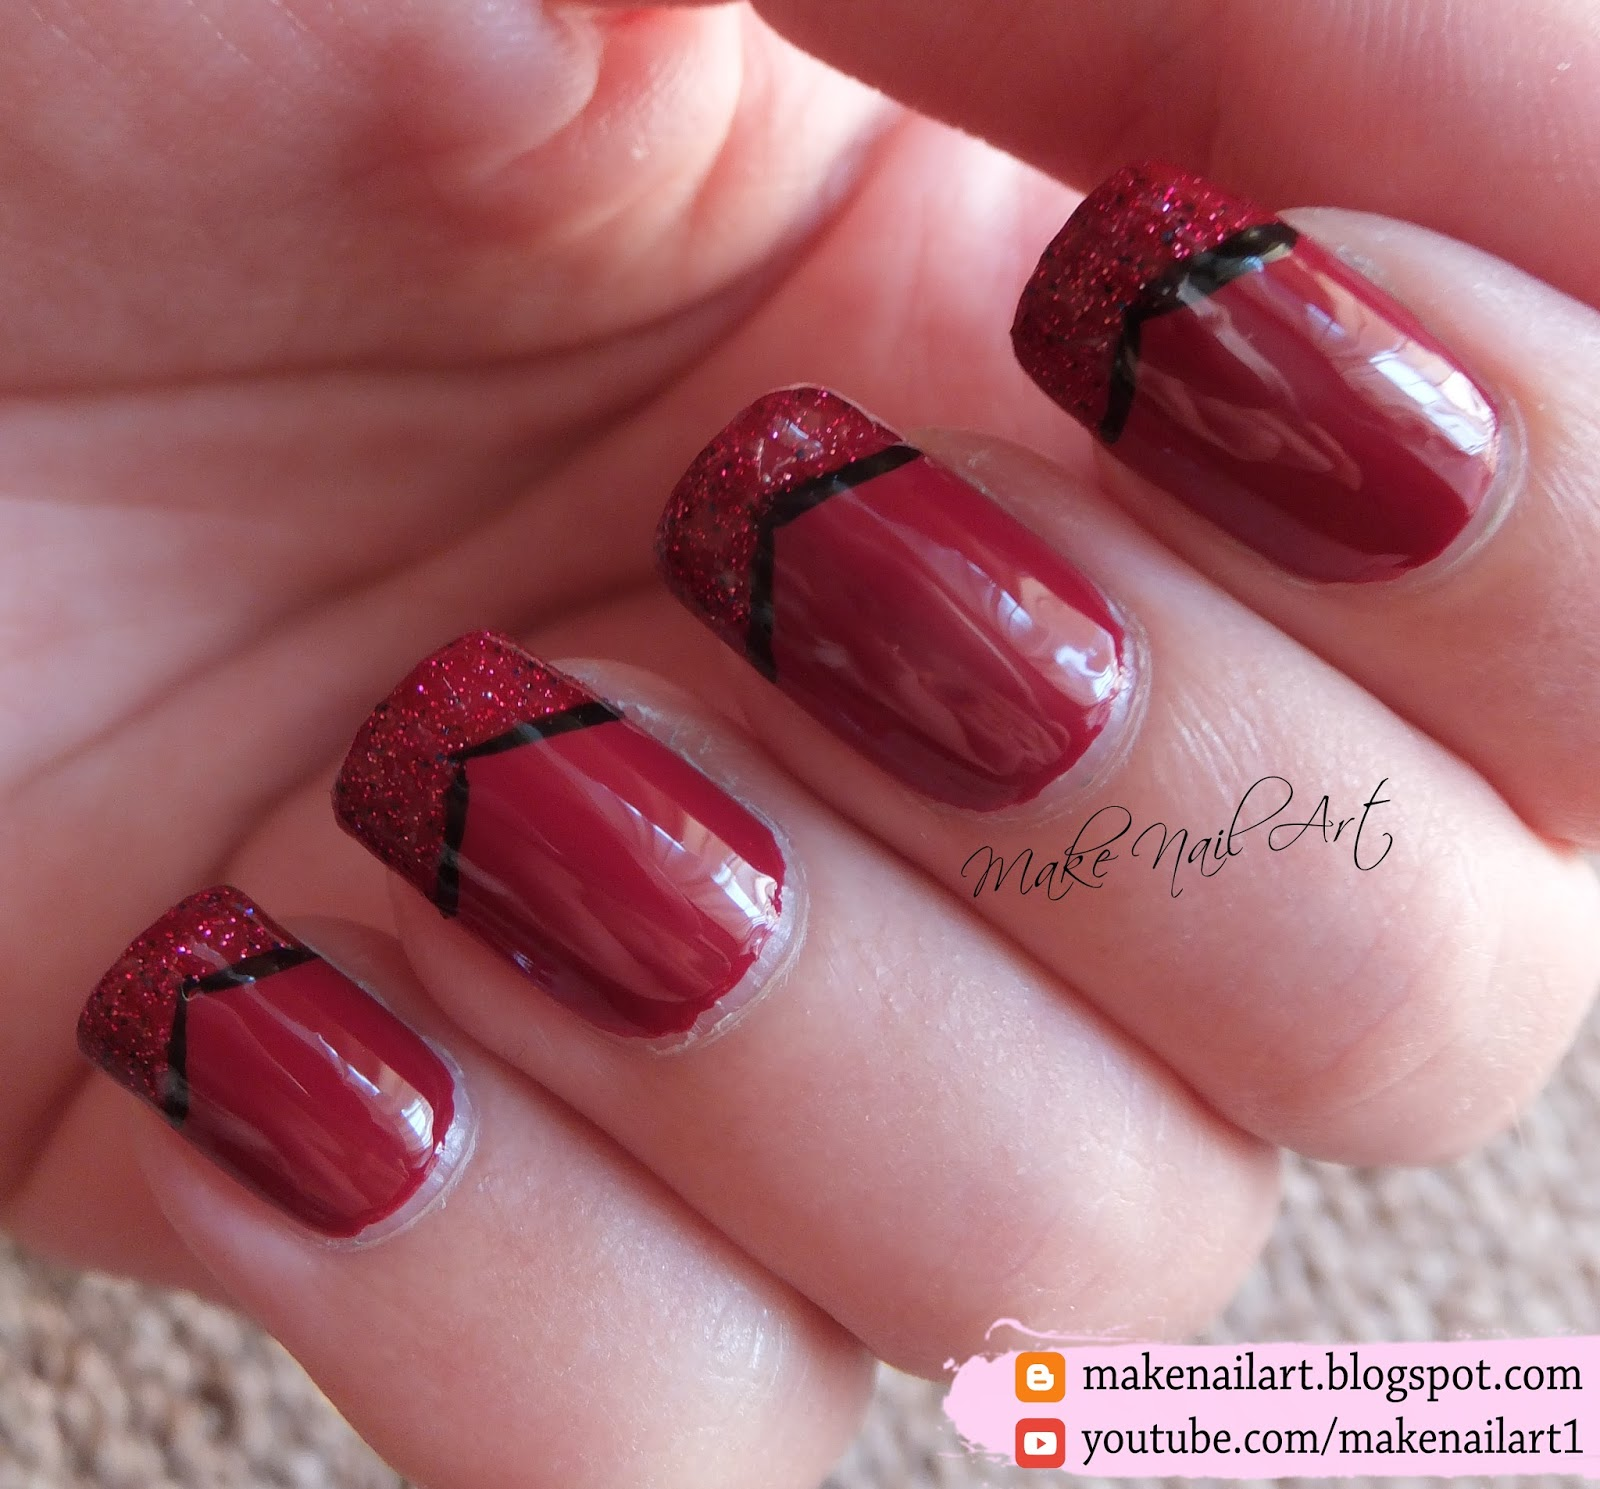 Make Nail Art: Easy Red French Manicure Nail Art Design Tutorial ...